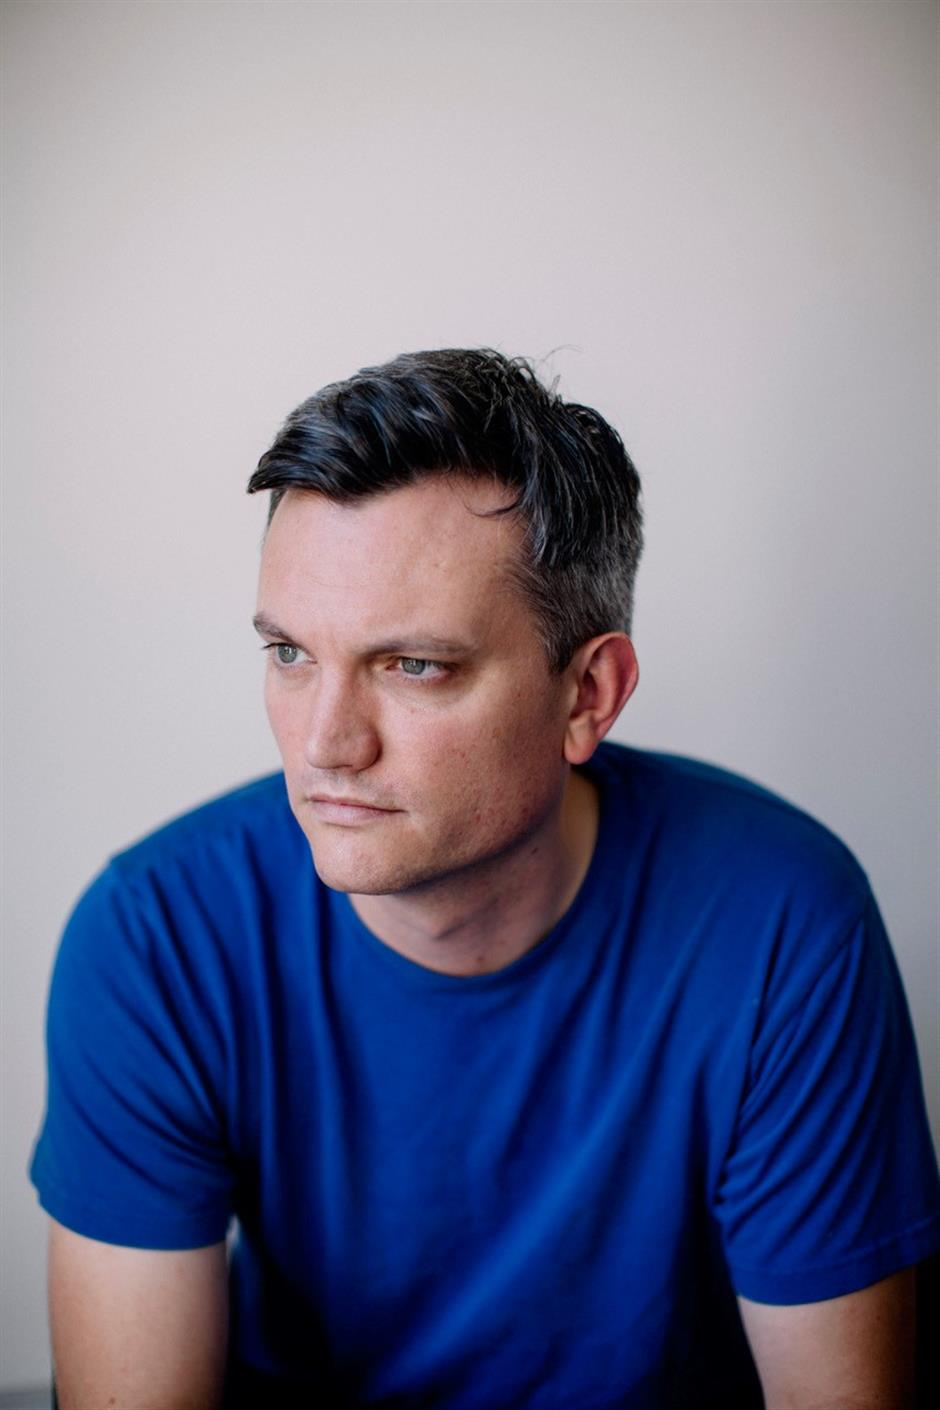 Mark O'Connell in Conversation